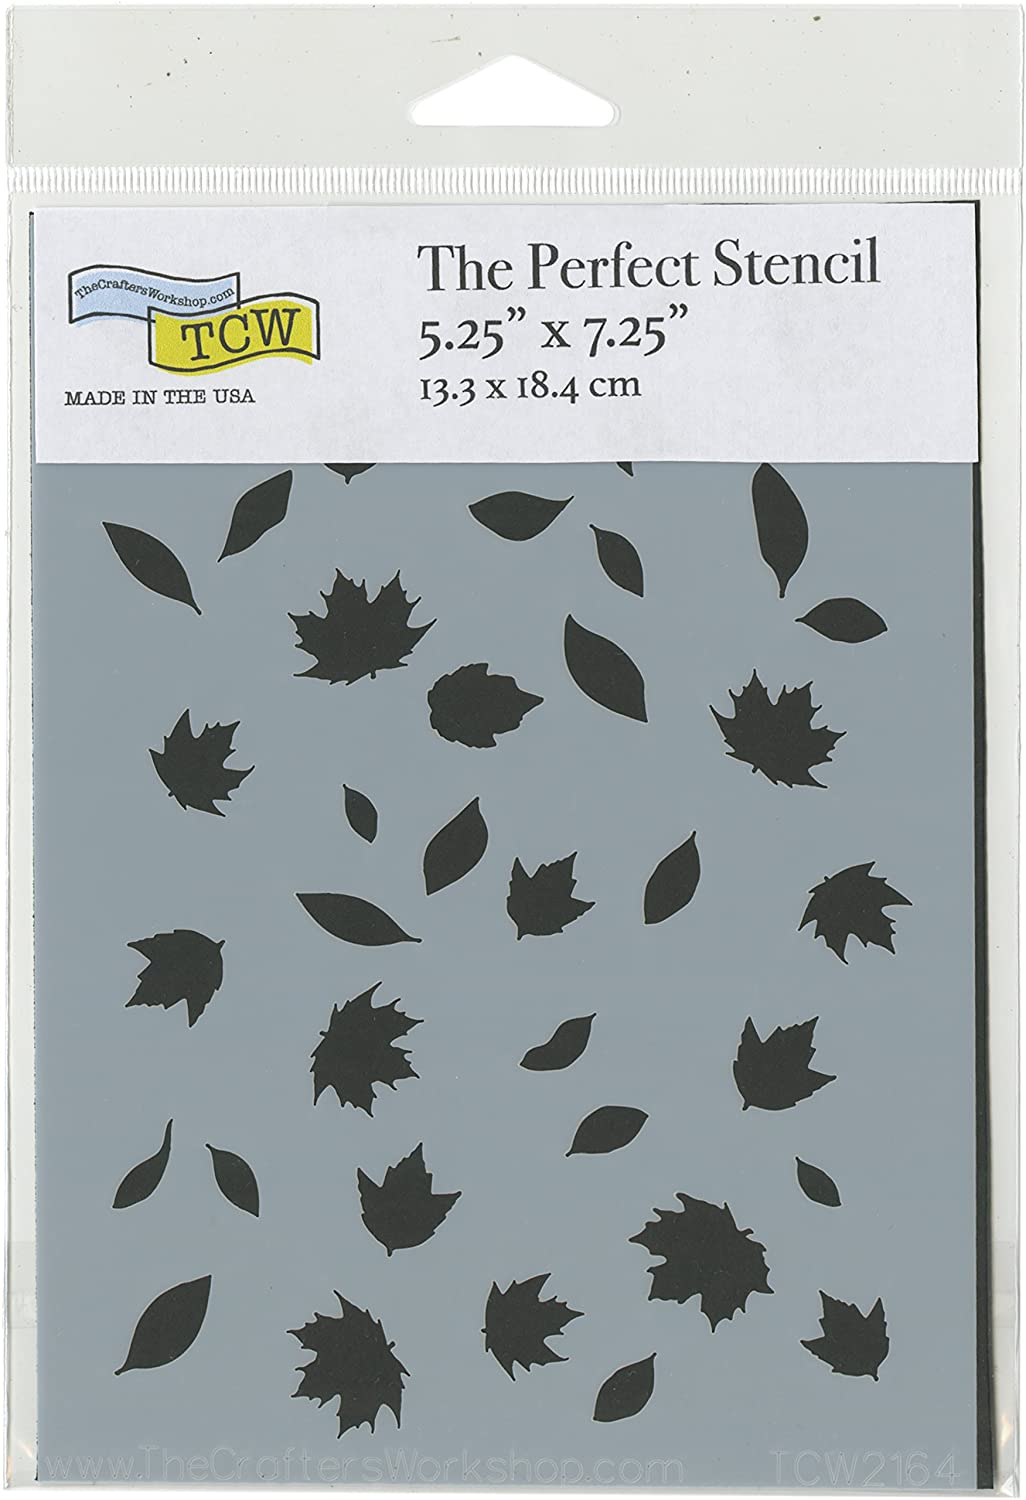 The Crafter's Workshop A7 Falling Leaves Perfect Stencils 5.25X7.25 3 Birds TCW2164